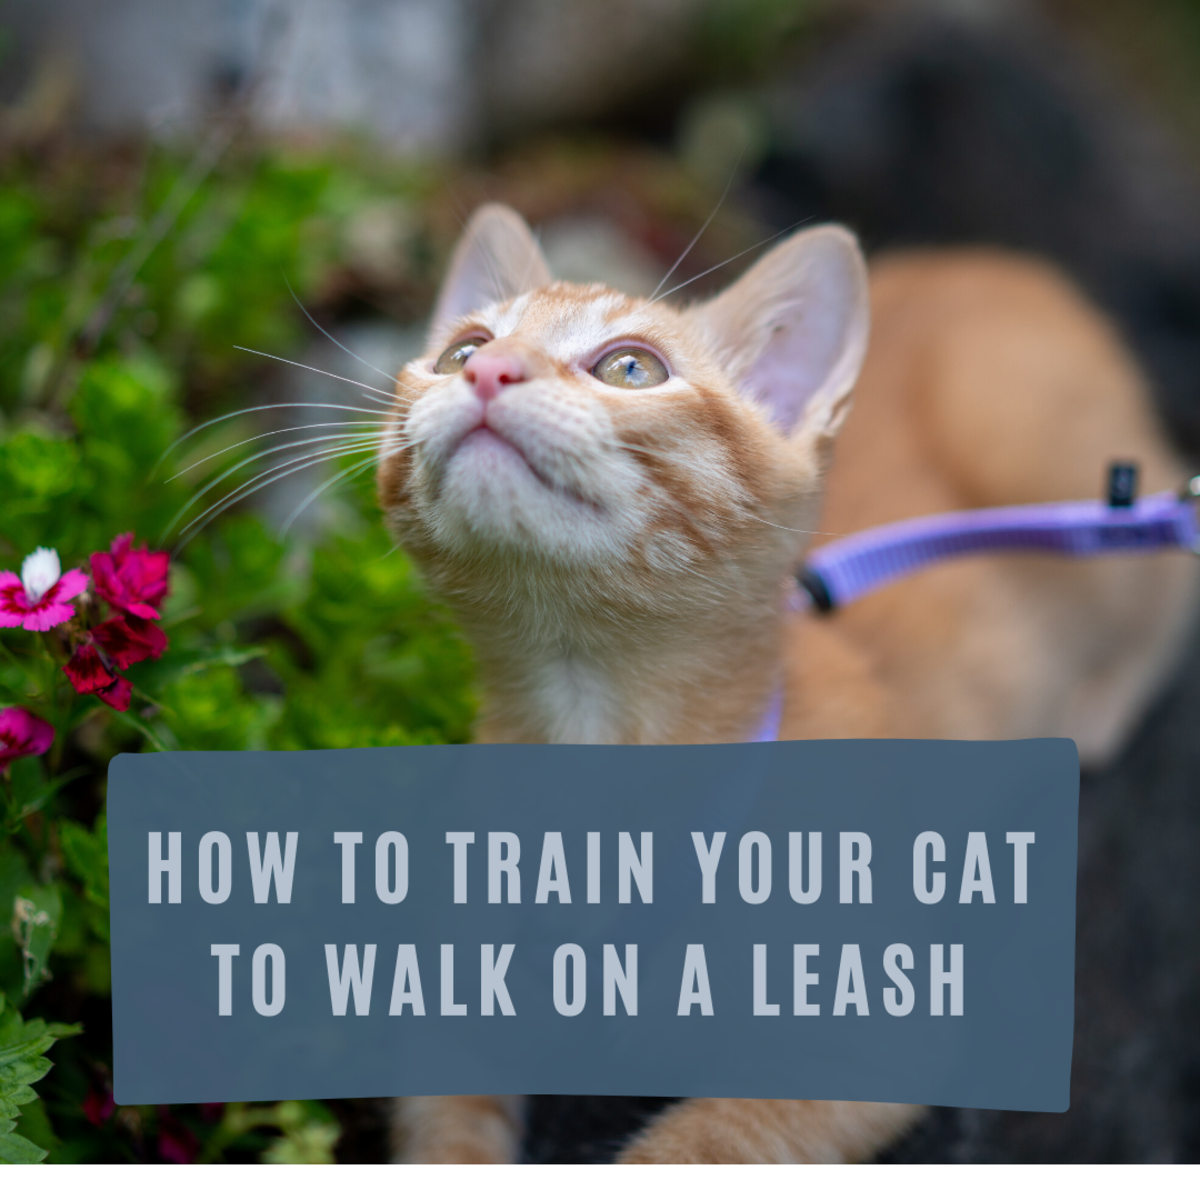 Yes Cats Can Walk On Leashes Training Your Cat To Walk On A Leash Or Harness Comes With Its Advantages Learn How To Acclimate In 2020 Training A Kitten Cats Leashes